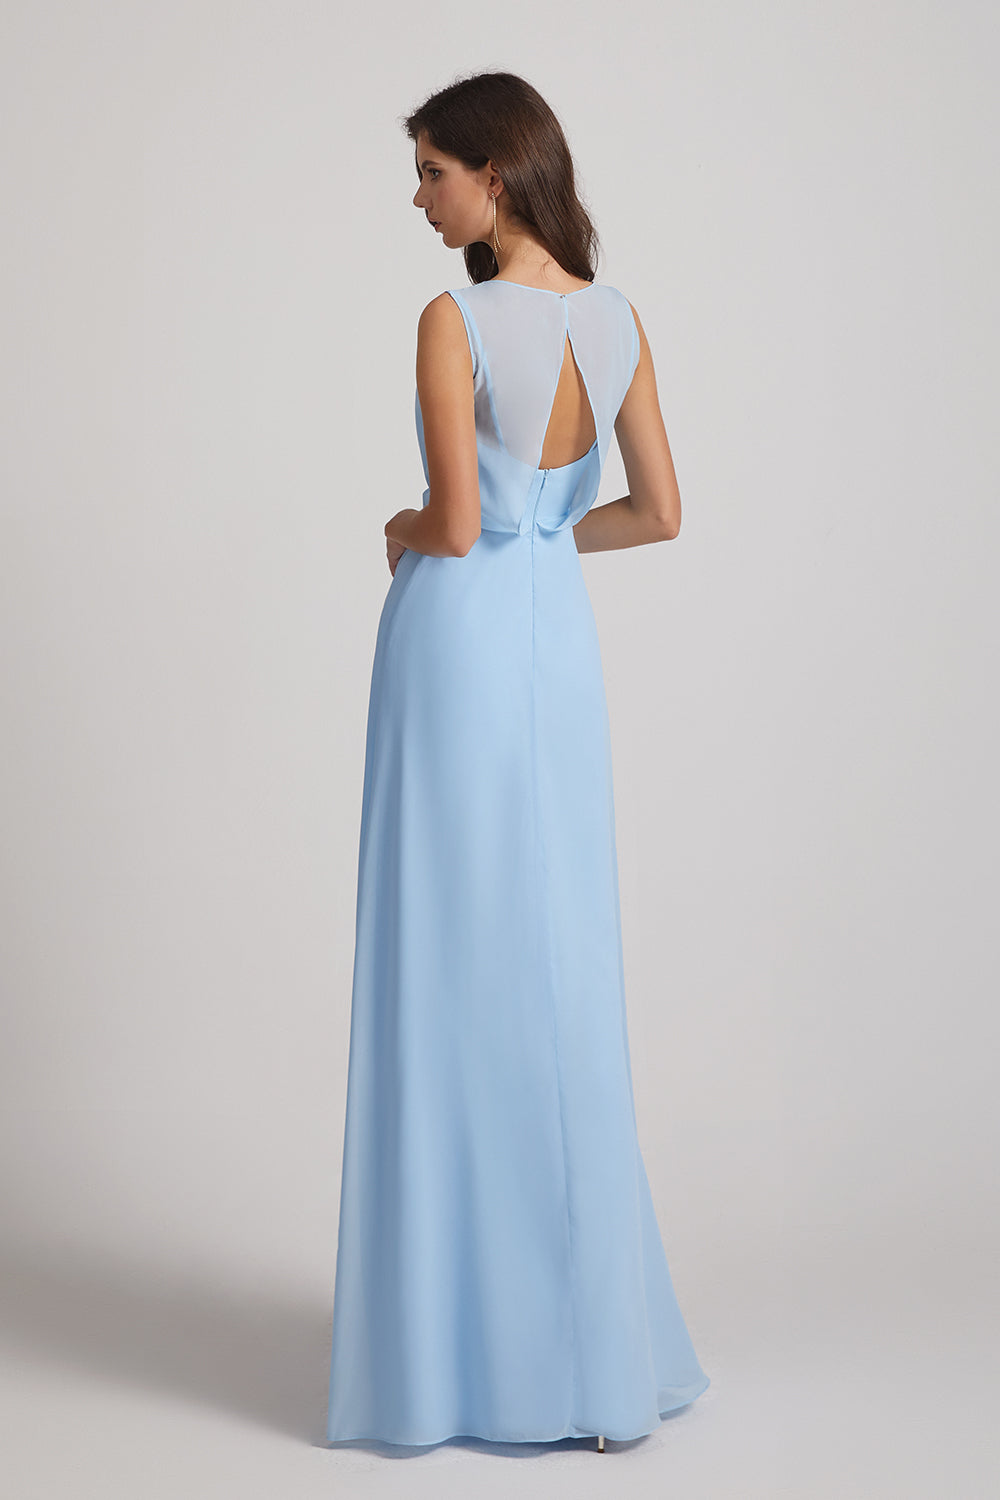 keyhole back bridesmaid dresses